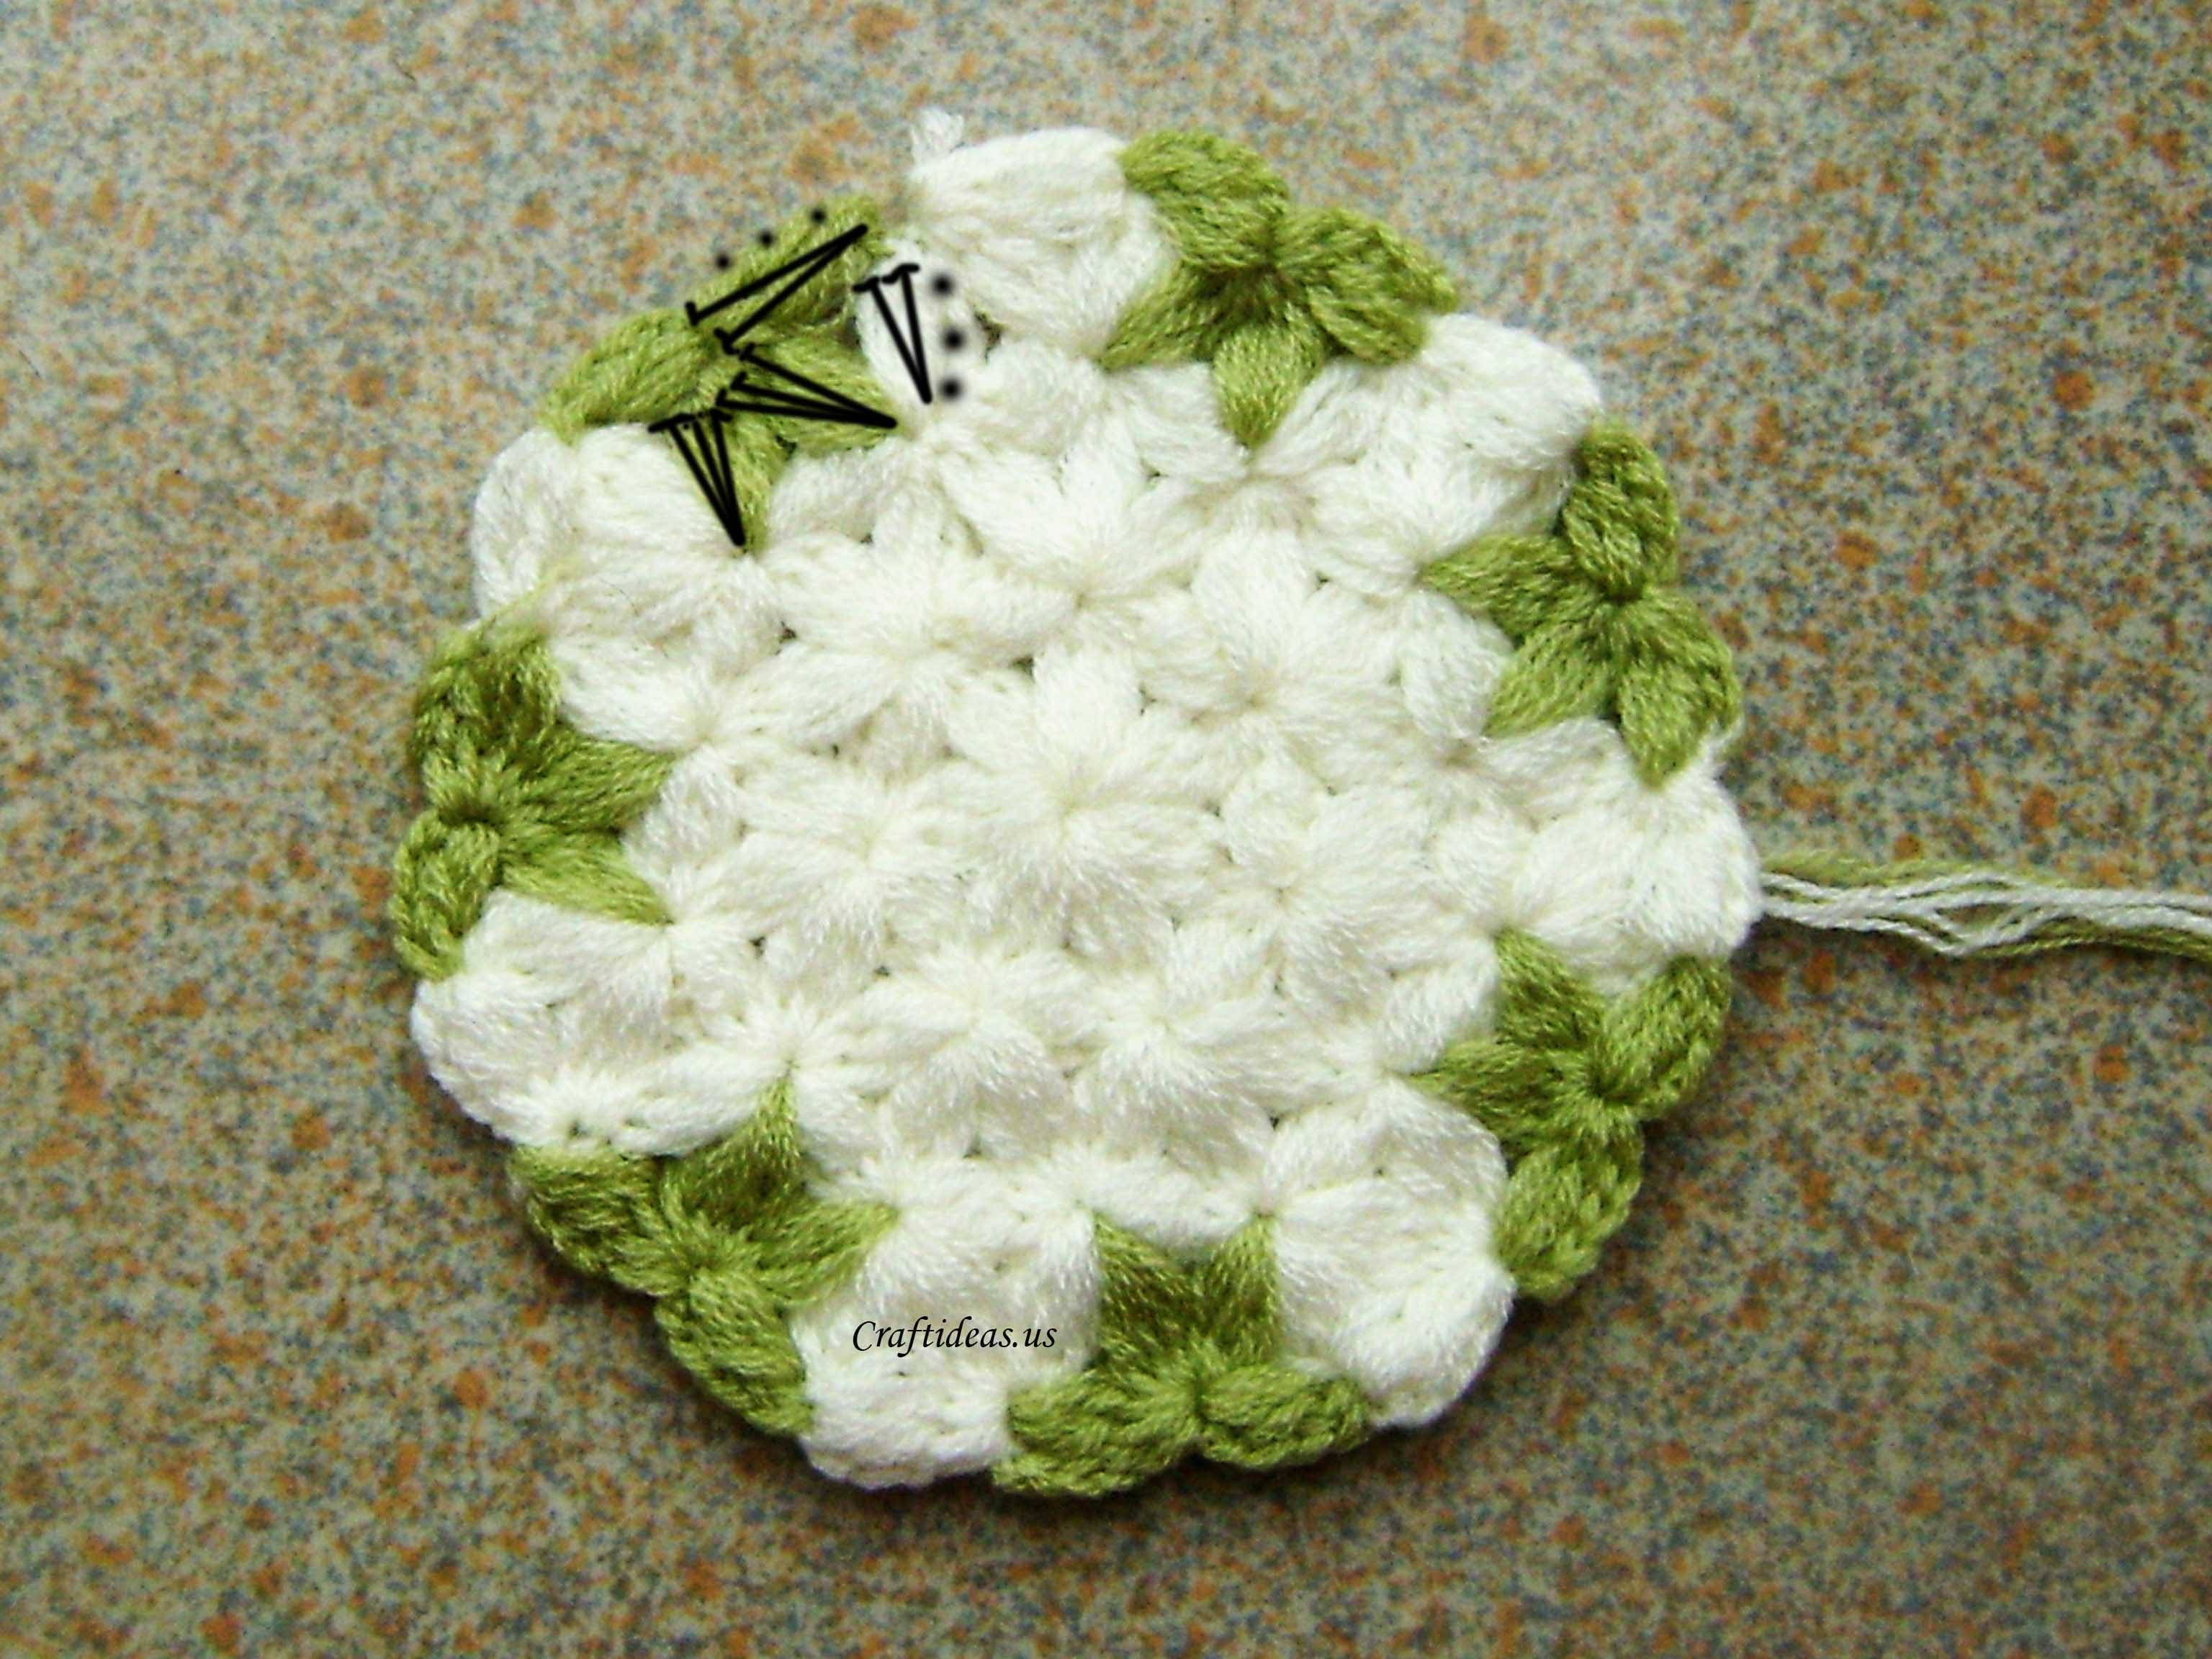 Crochet Stitch Jasmine : Crochet next cluster stitch with (Chain 3, 2dc in the cluster stitch ...